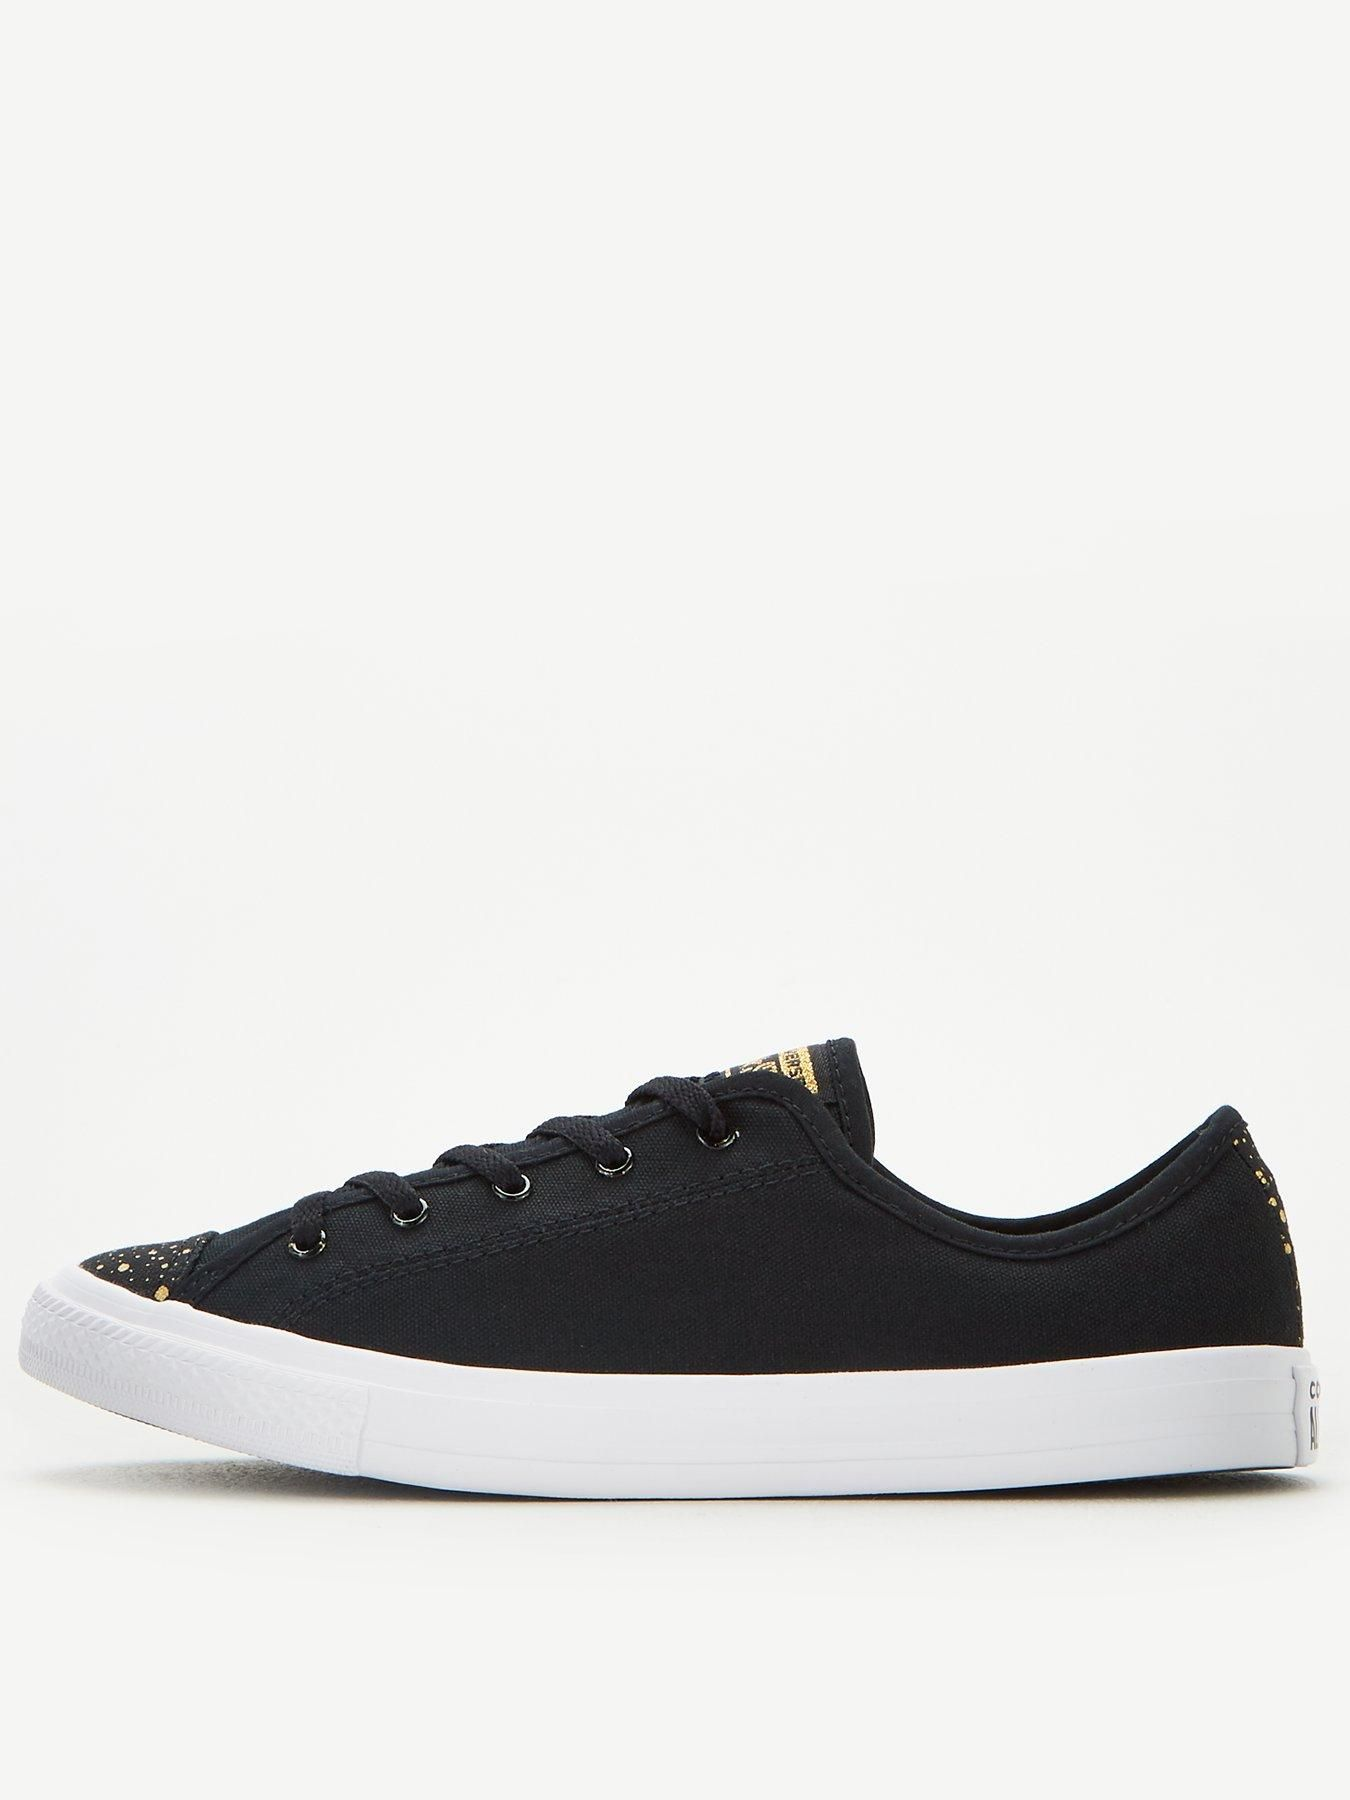 Converse Chuck Taylor All Star Speckled